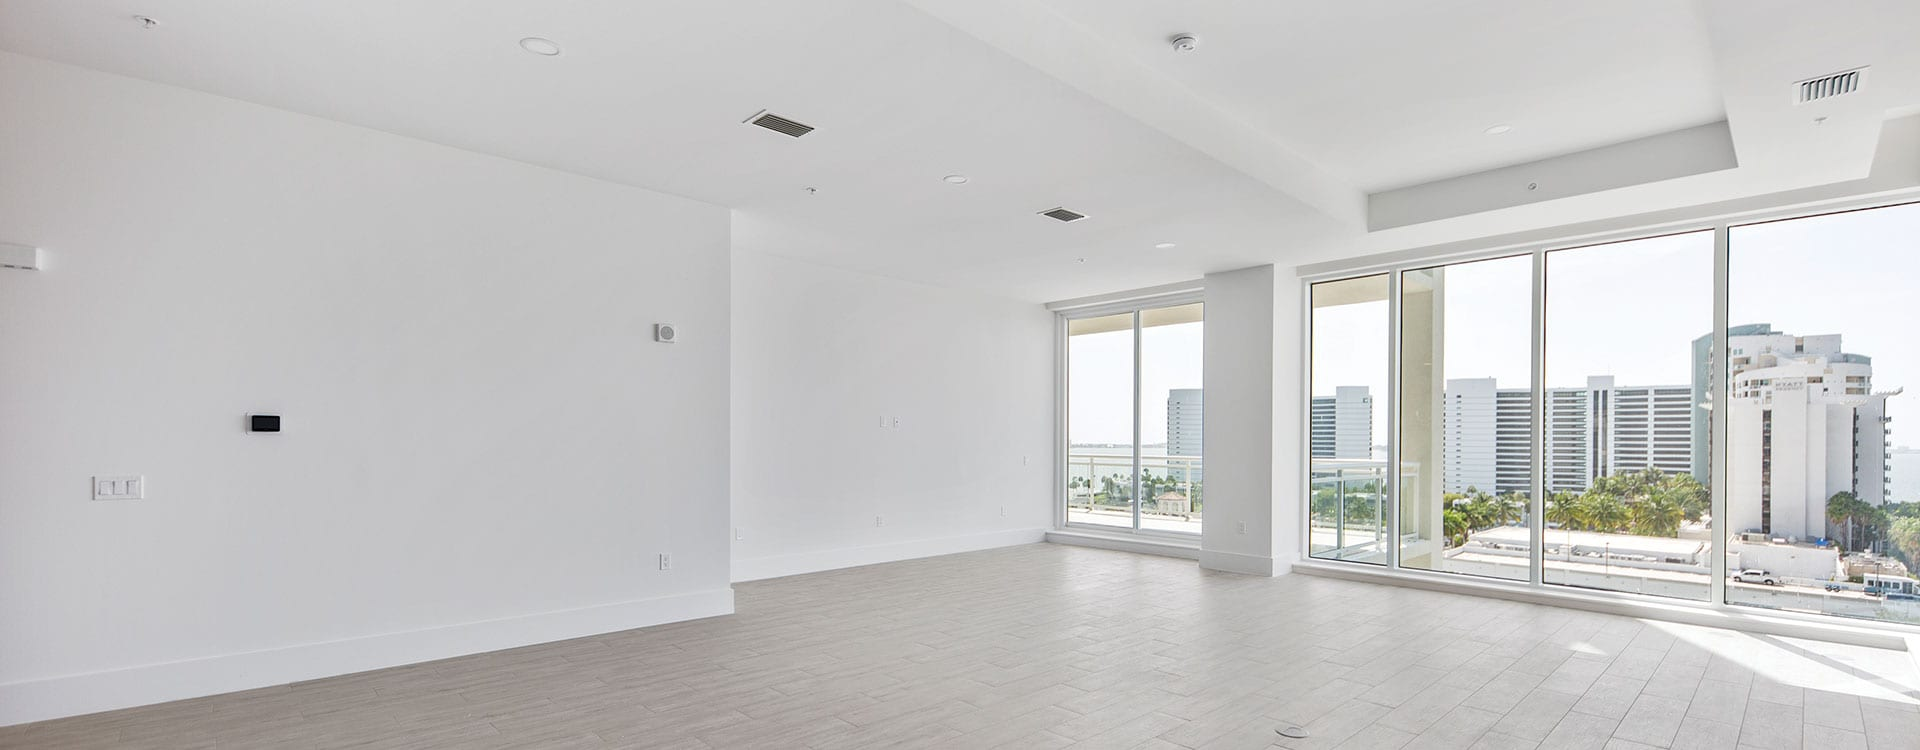 BLVD Sarasota Residence 803 Great Room with a view of the bayfront